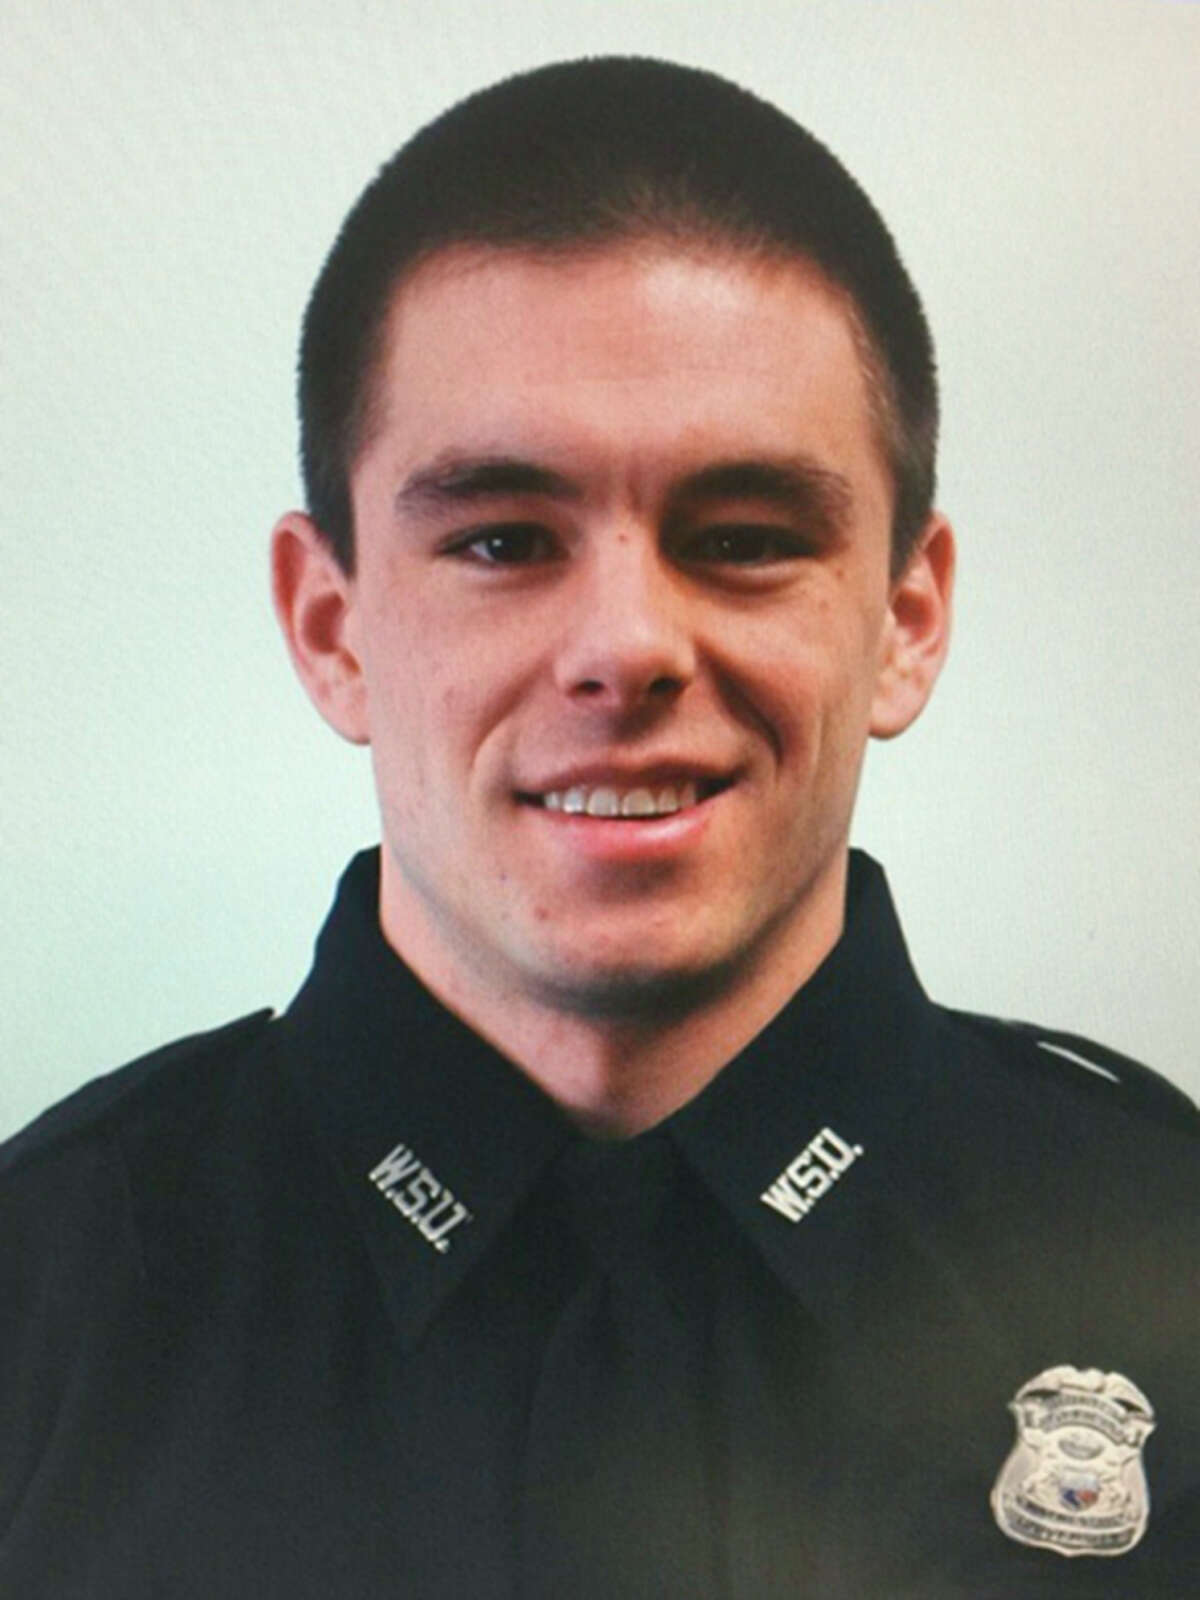 This undated photo provided by Wayne State University shows university police officer Collin Rose, who was shot in the head while on patrol near a university campus in Detroit on Tuesday, Nov. 22, 2016. Rose is a five-year veteran of the department who works in the canine unit. (Wayne State University via AP)